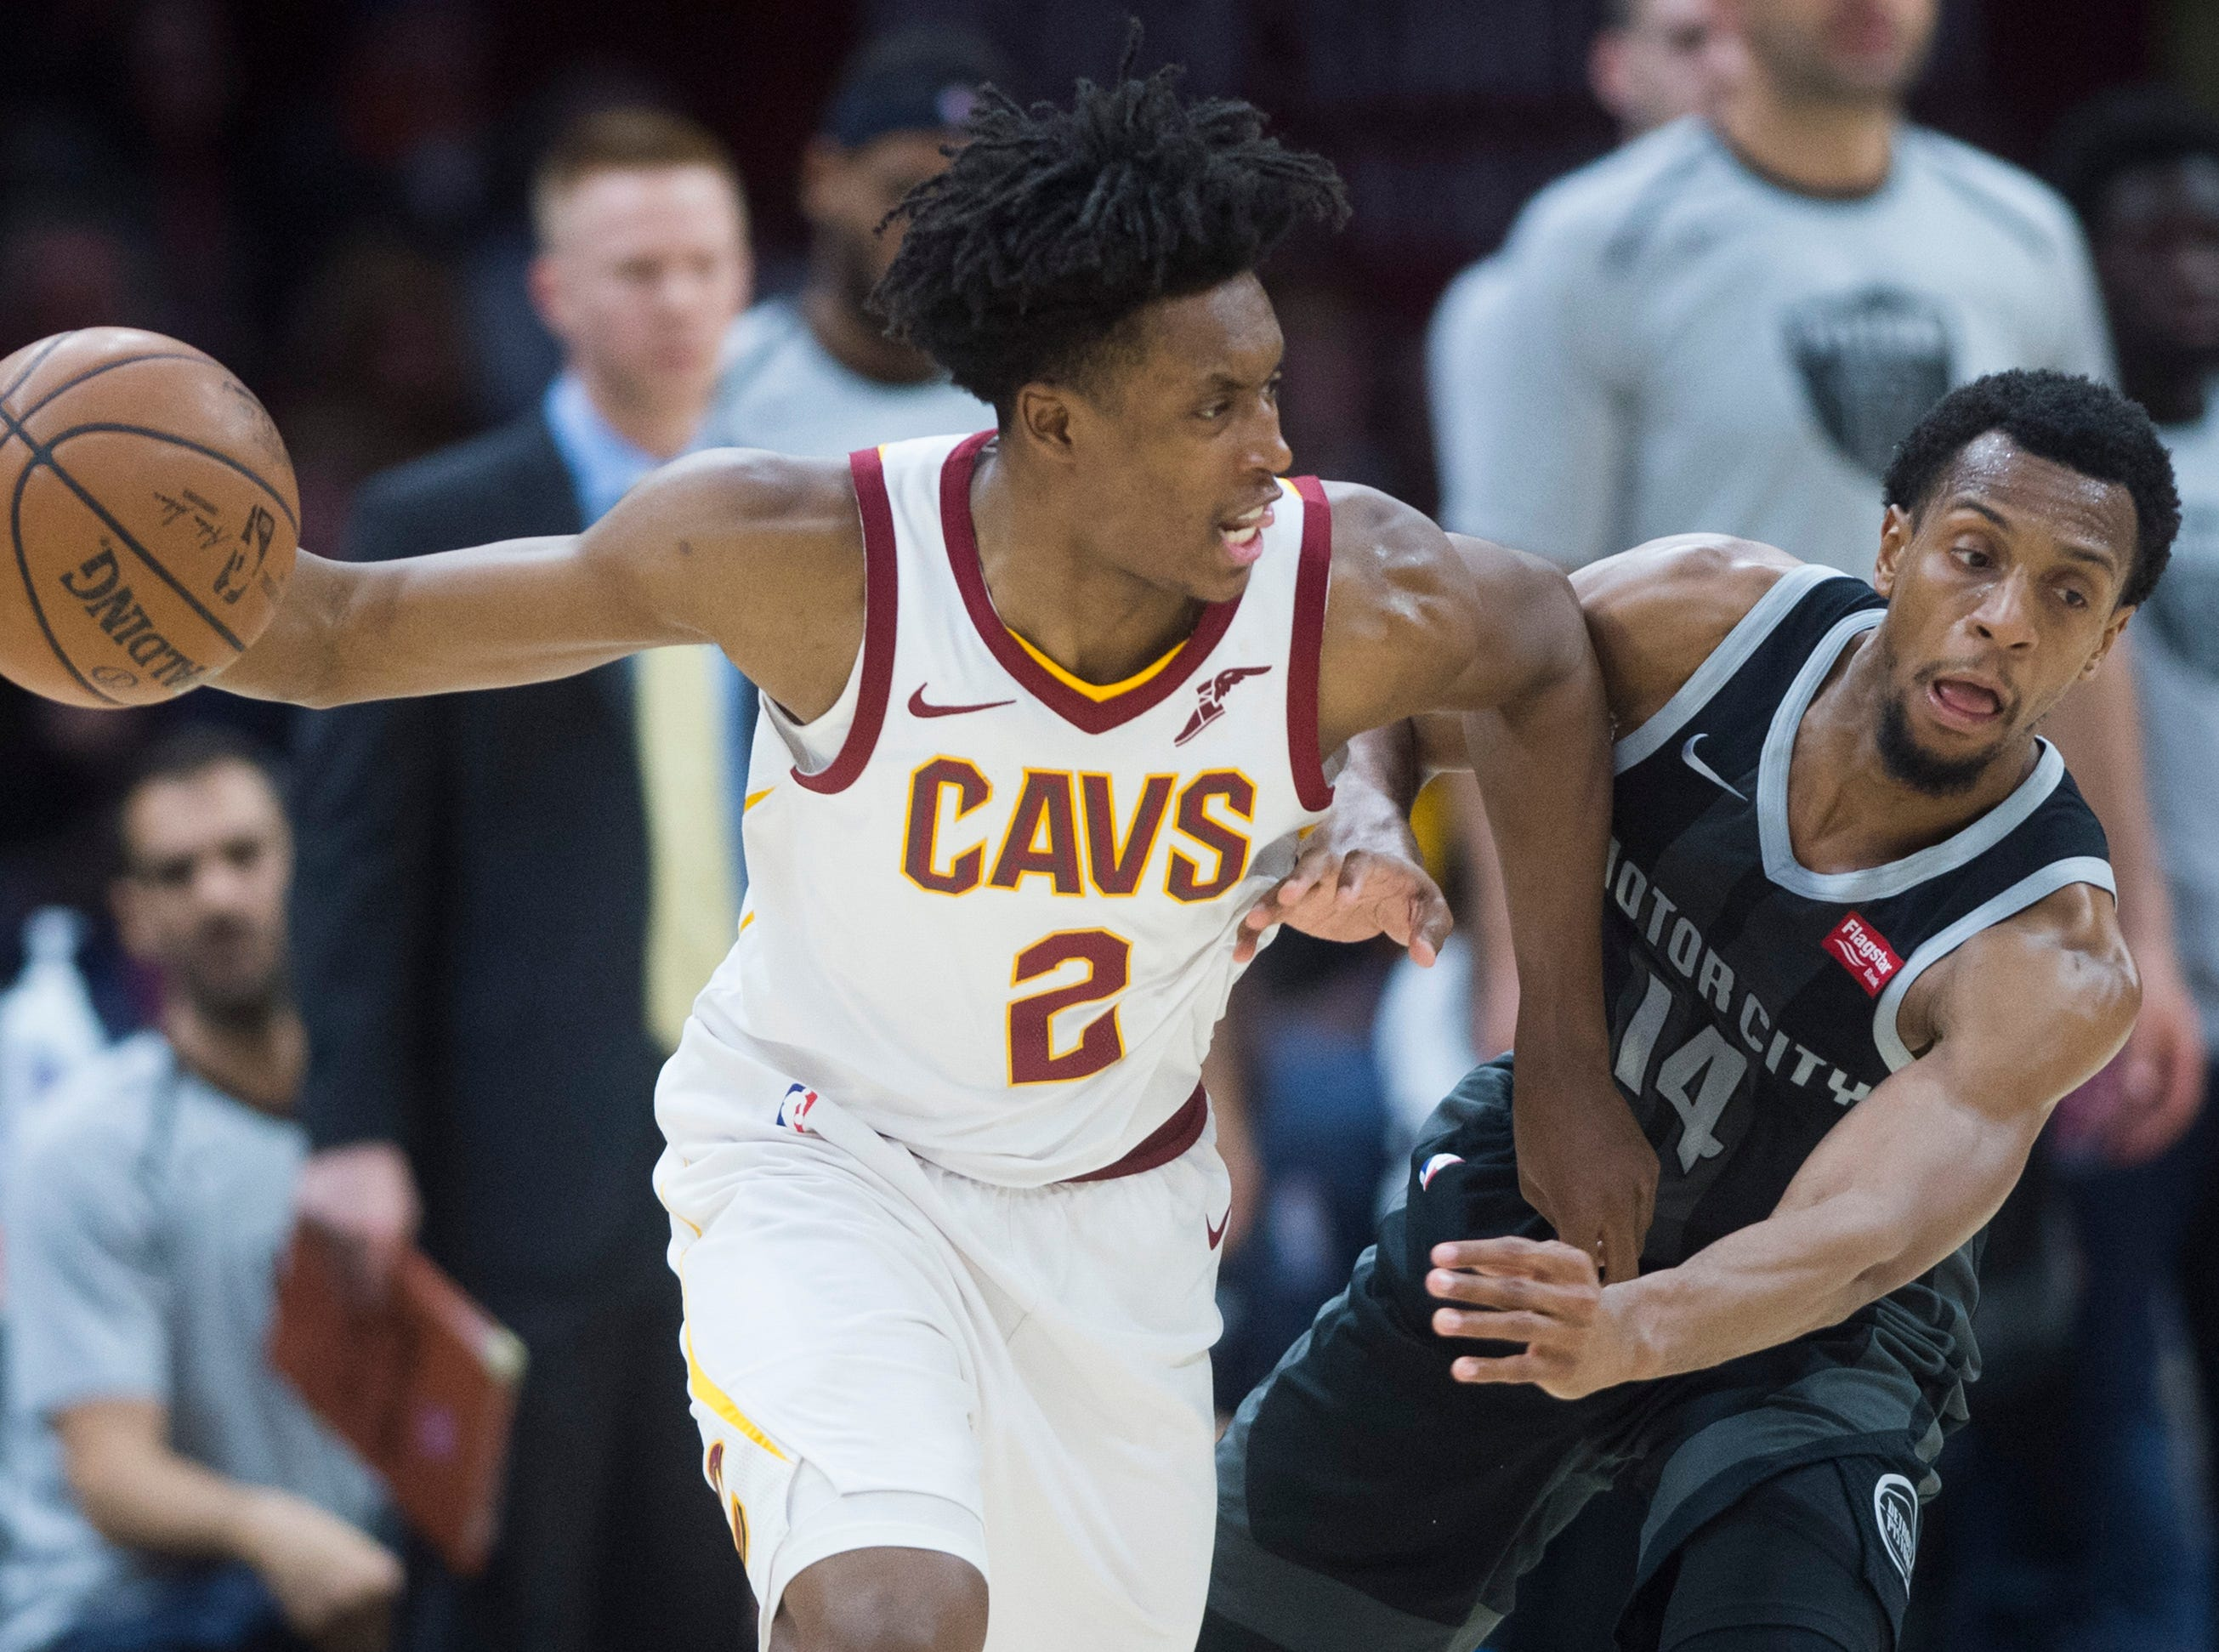 Detroit Pistons guard Ish Smith (14) defends against Cleveland Cavaliers guard Collin Sexton in the second half of an NBA basketball game.